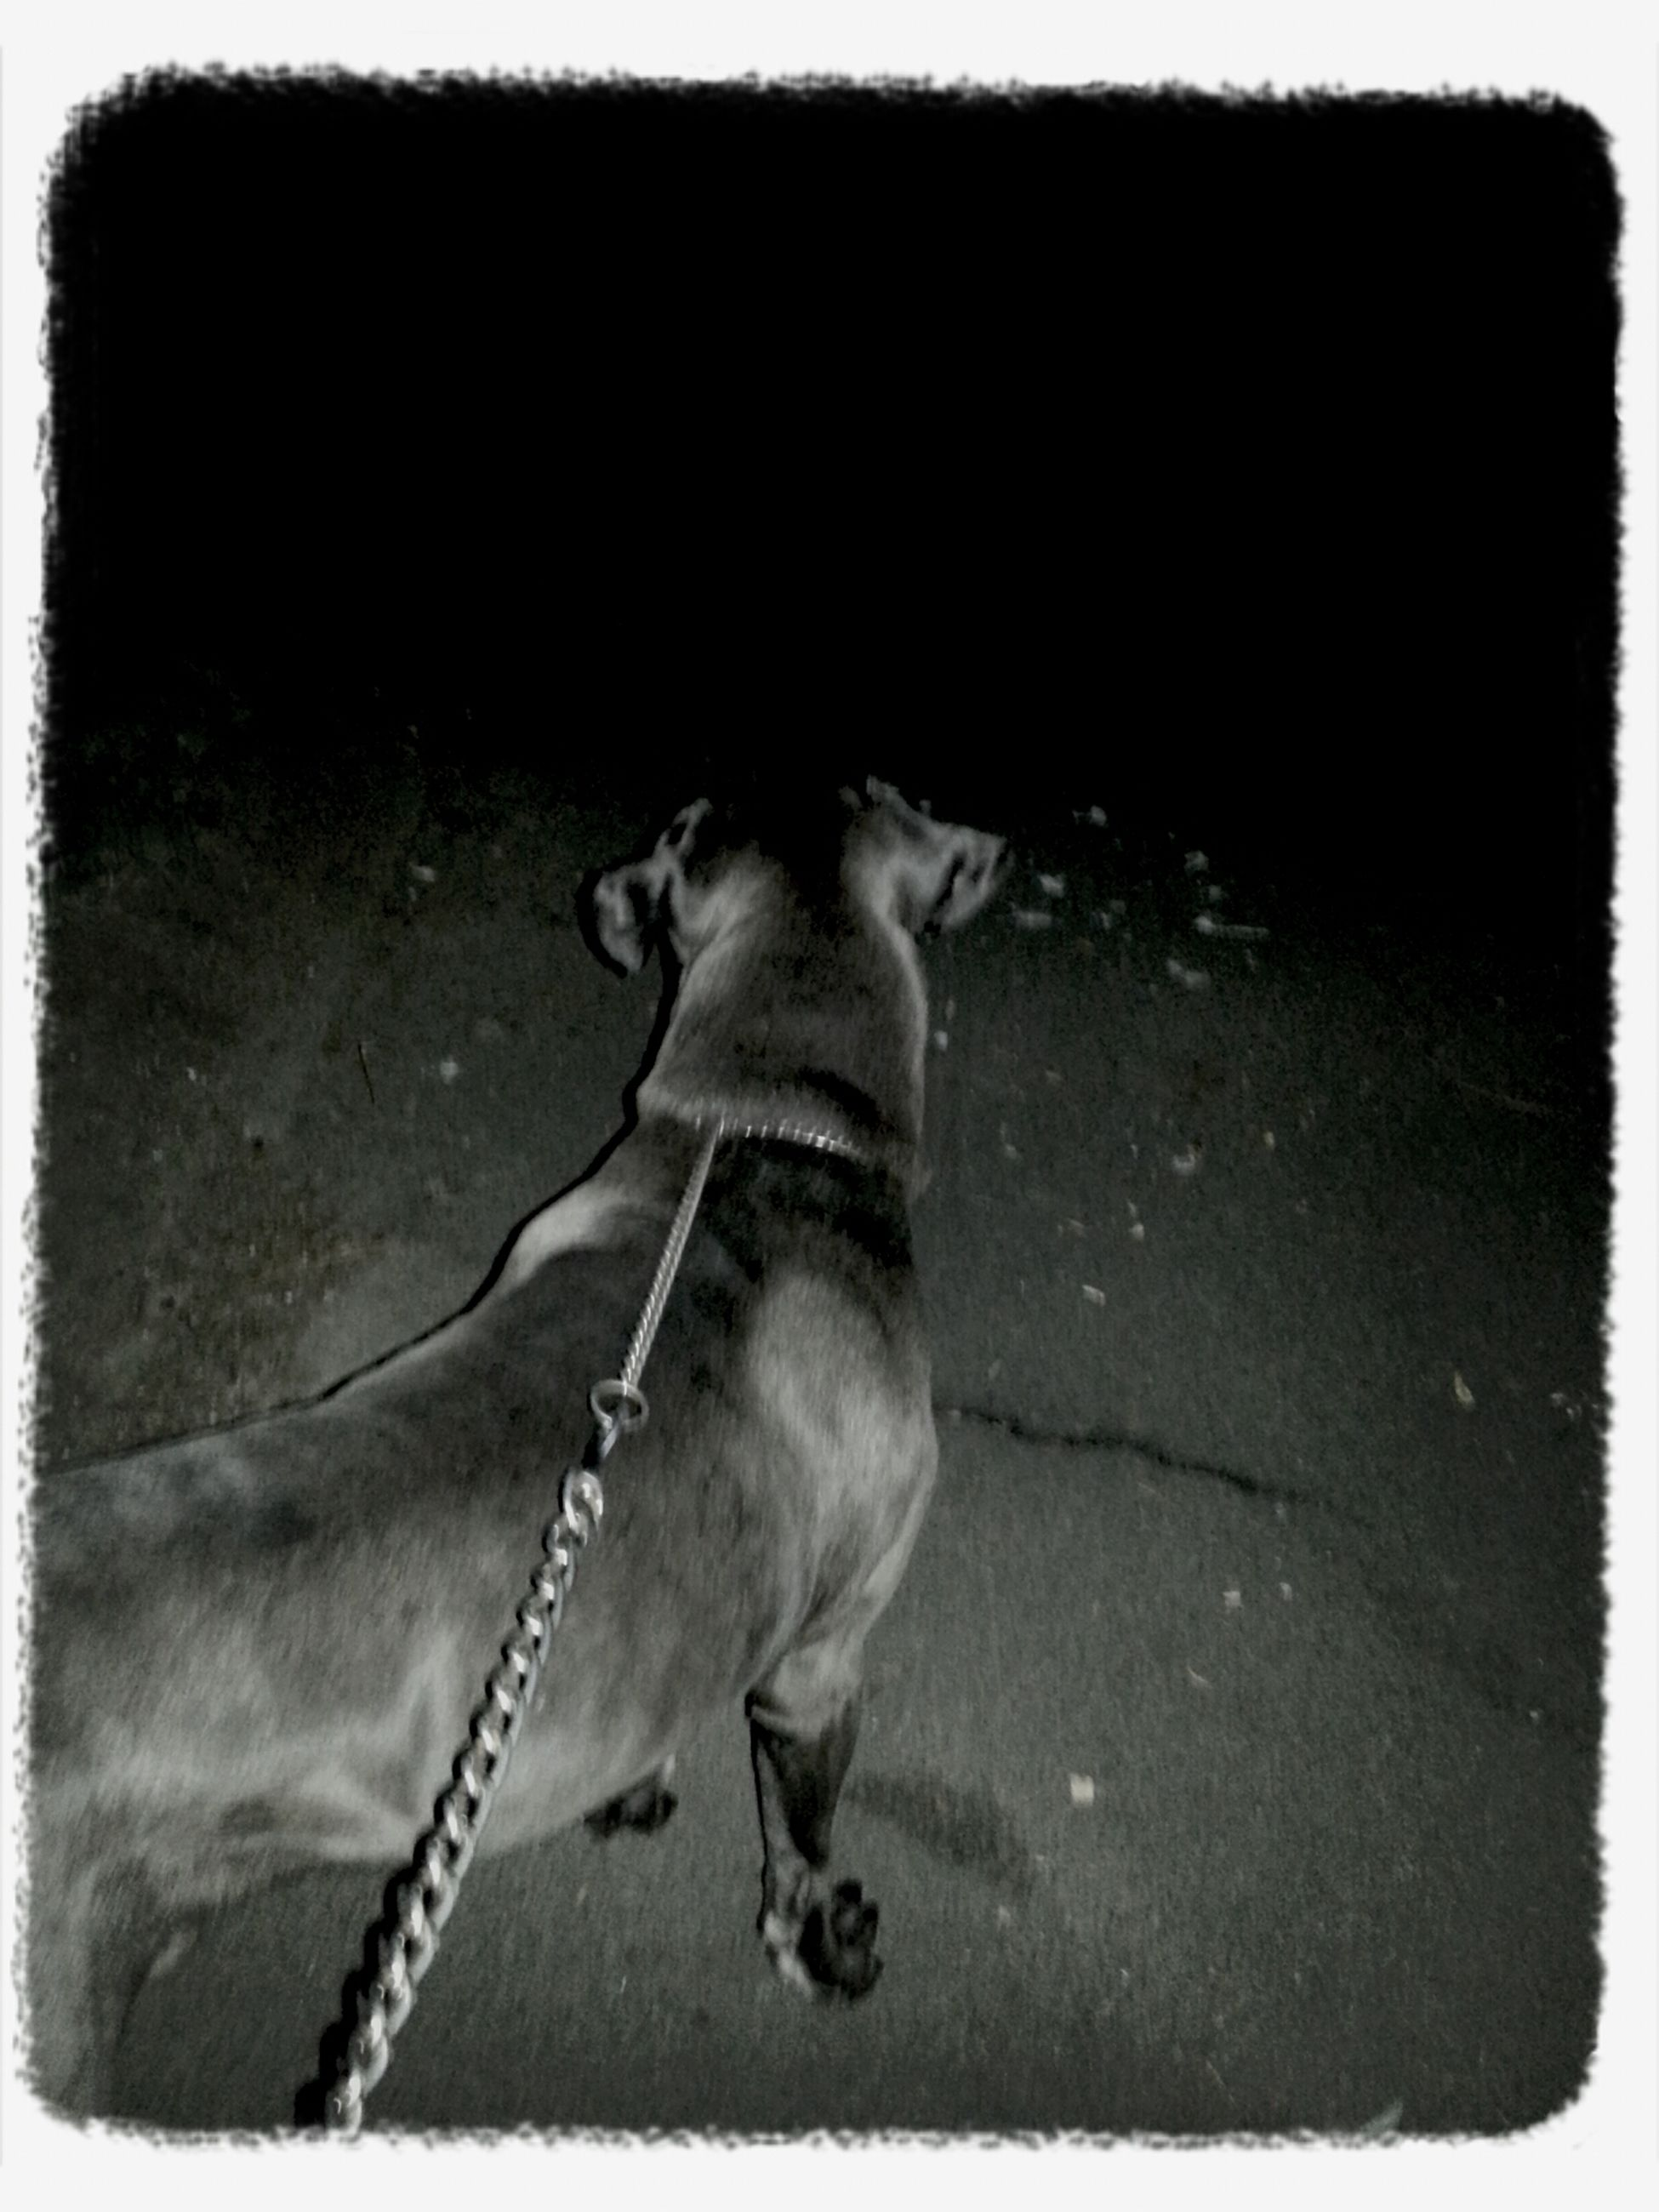 Excercising Nightphotography Dogoftheday Parklife takin rebs for a late night mooch :)